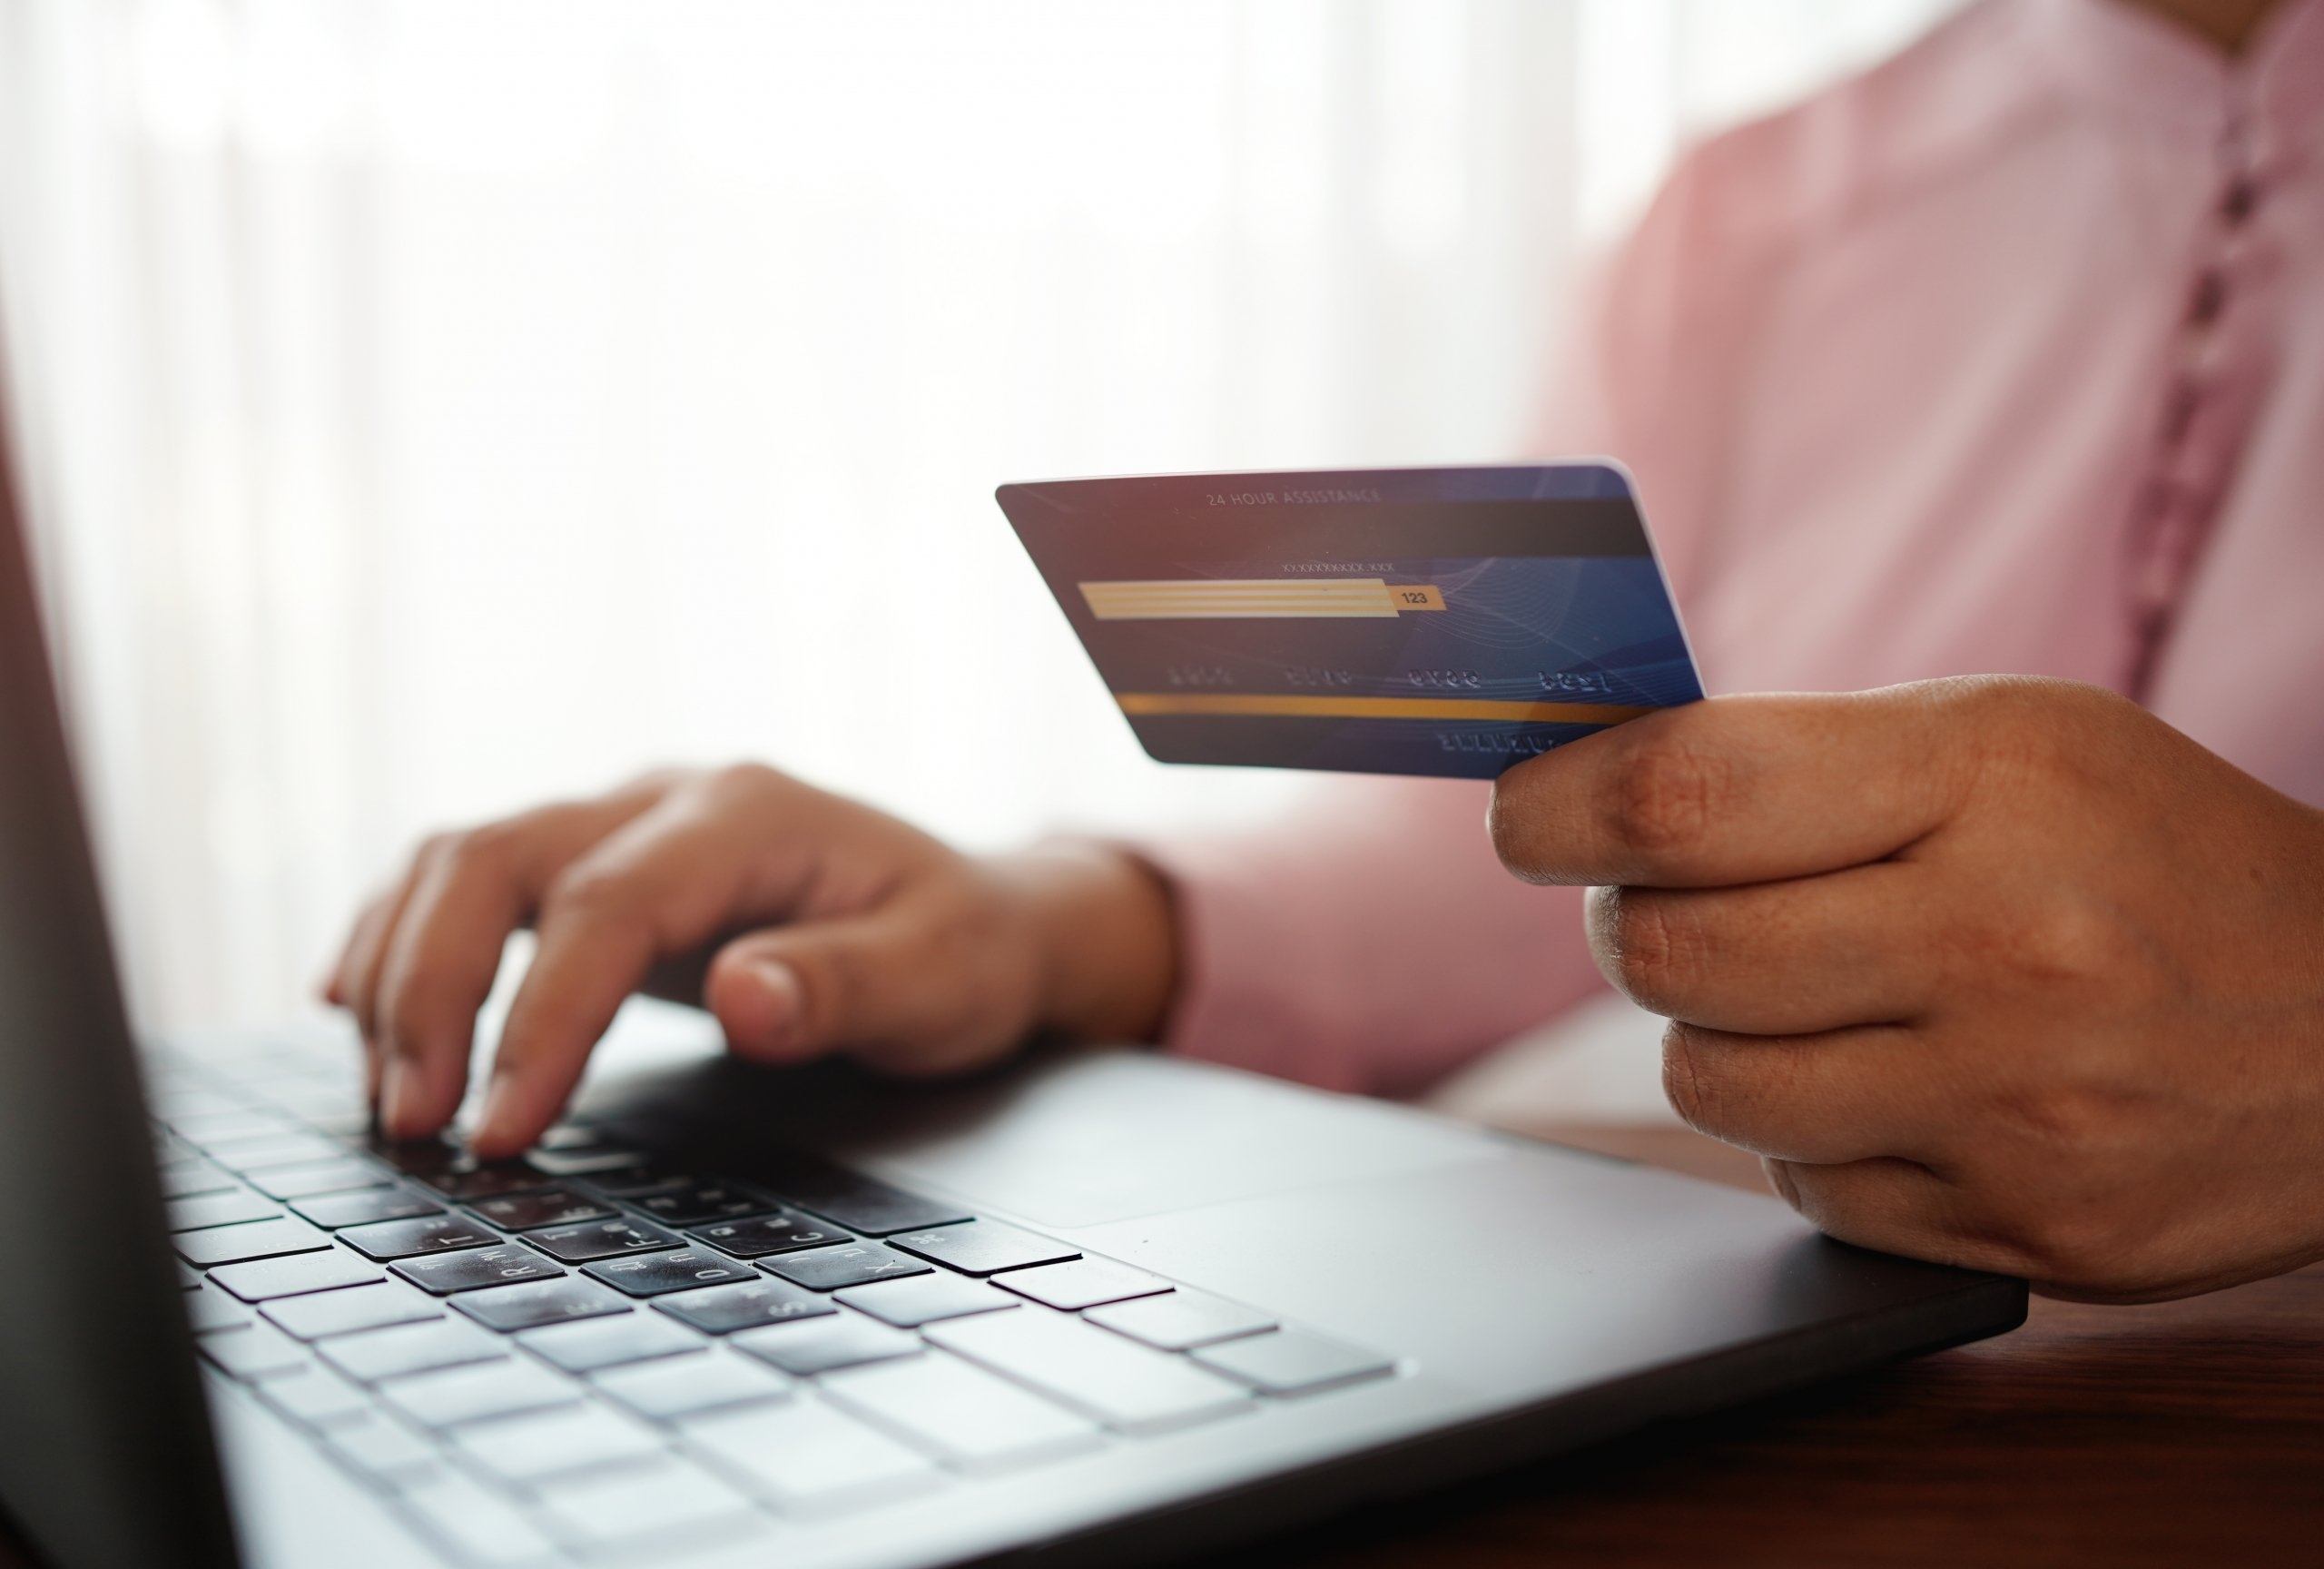 man holding a credit card while making an online purchase on a laptop